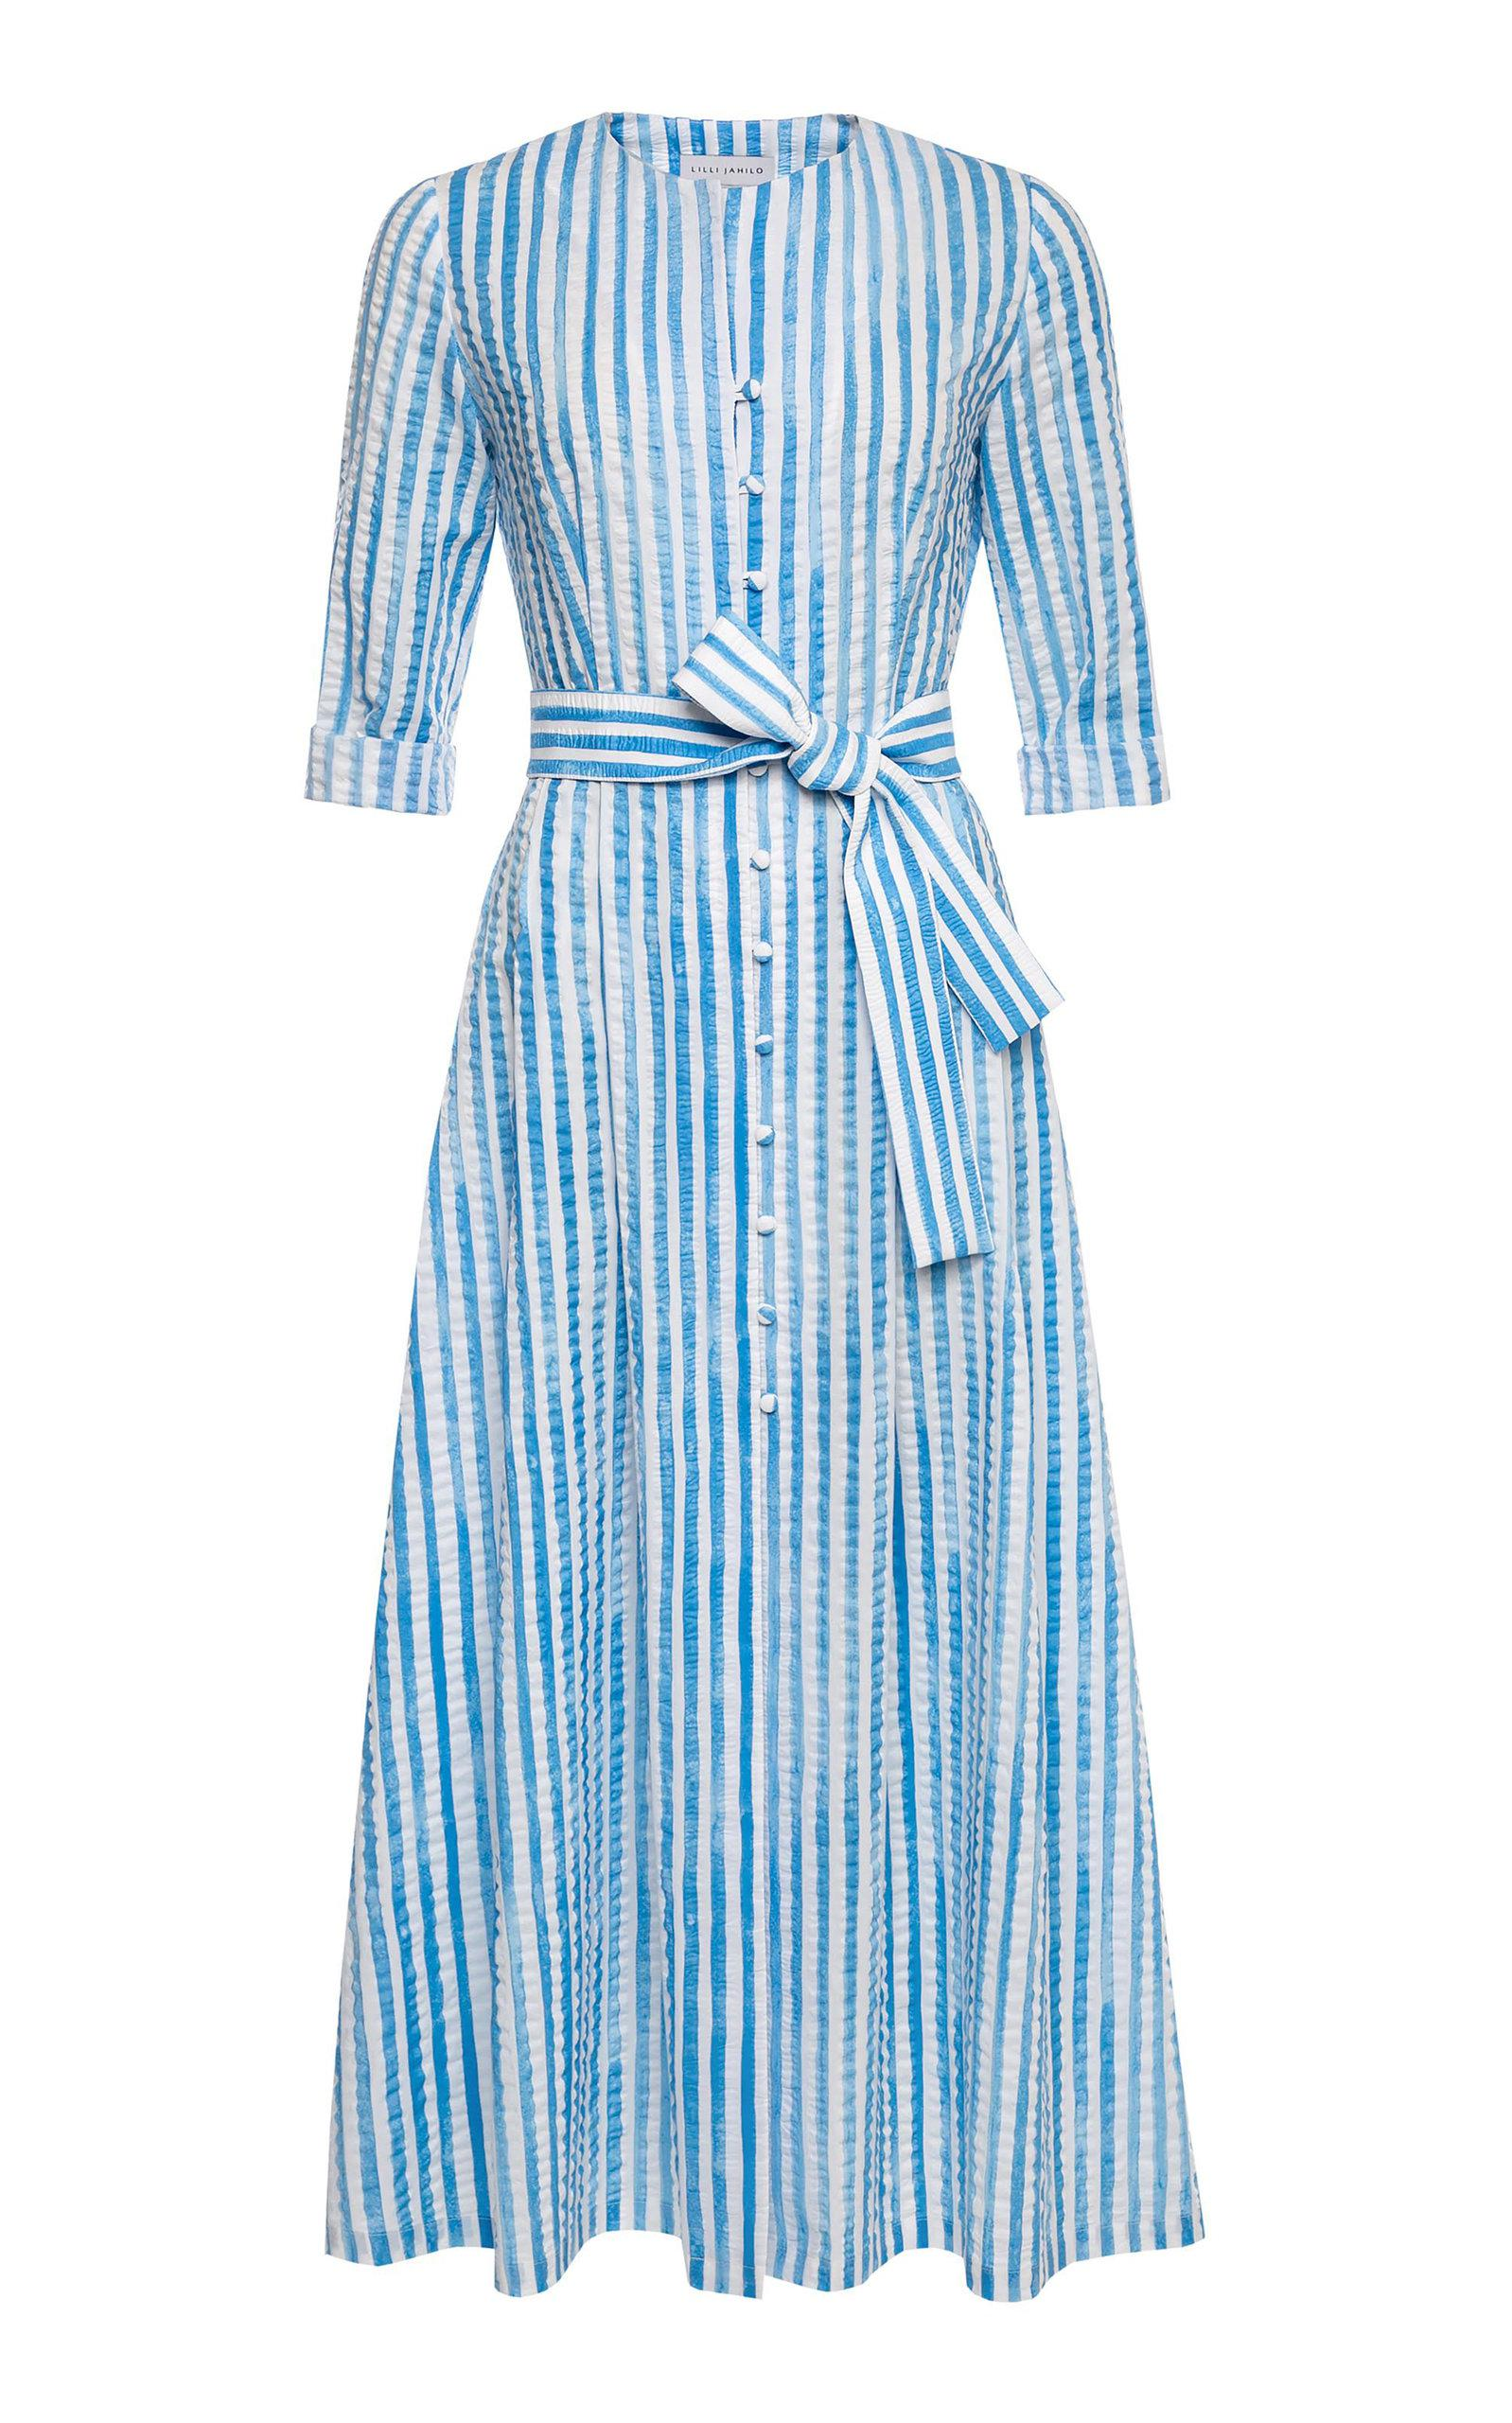 8771b89c45b Lyst - Lilli Jahilo Ellen Cotton Dress With Knife Pleats in Blue